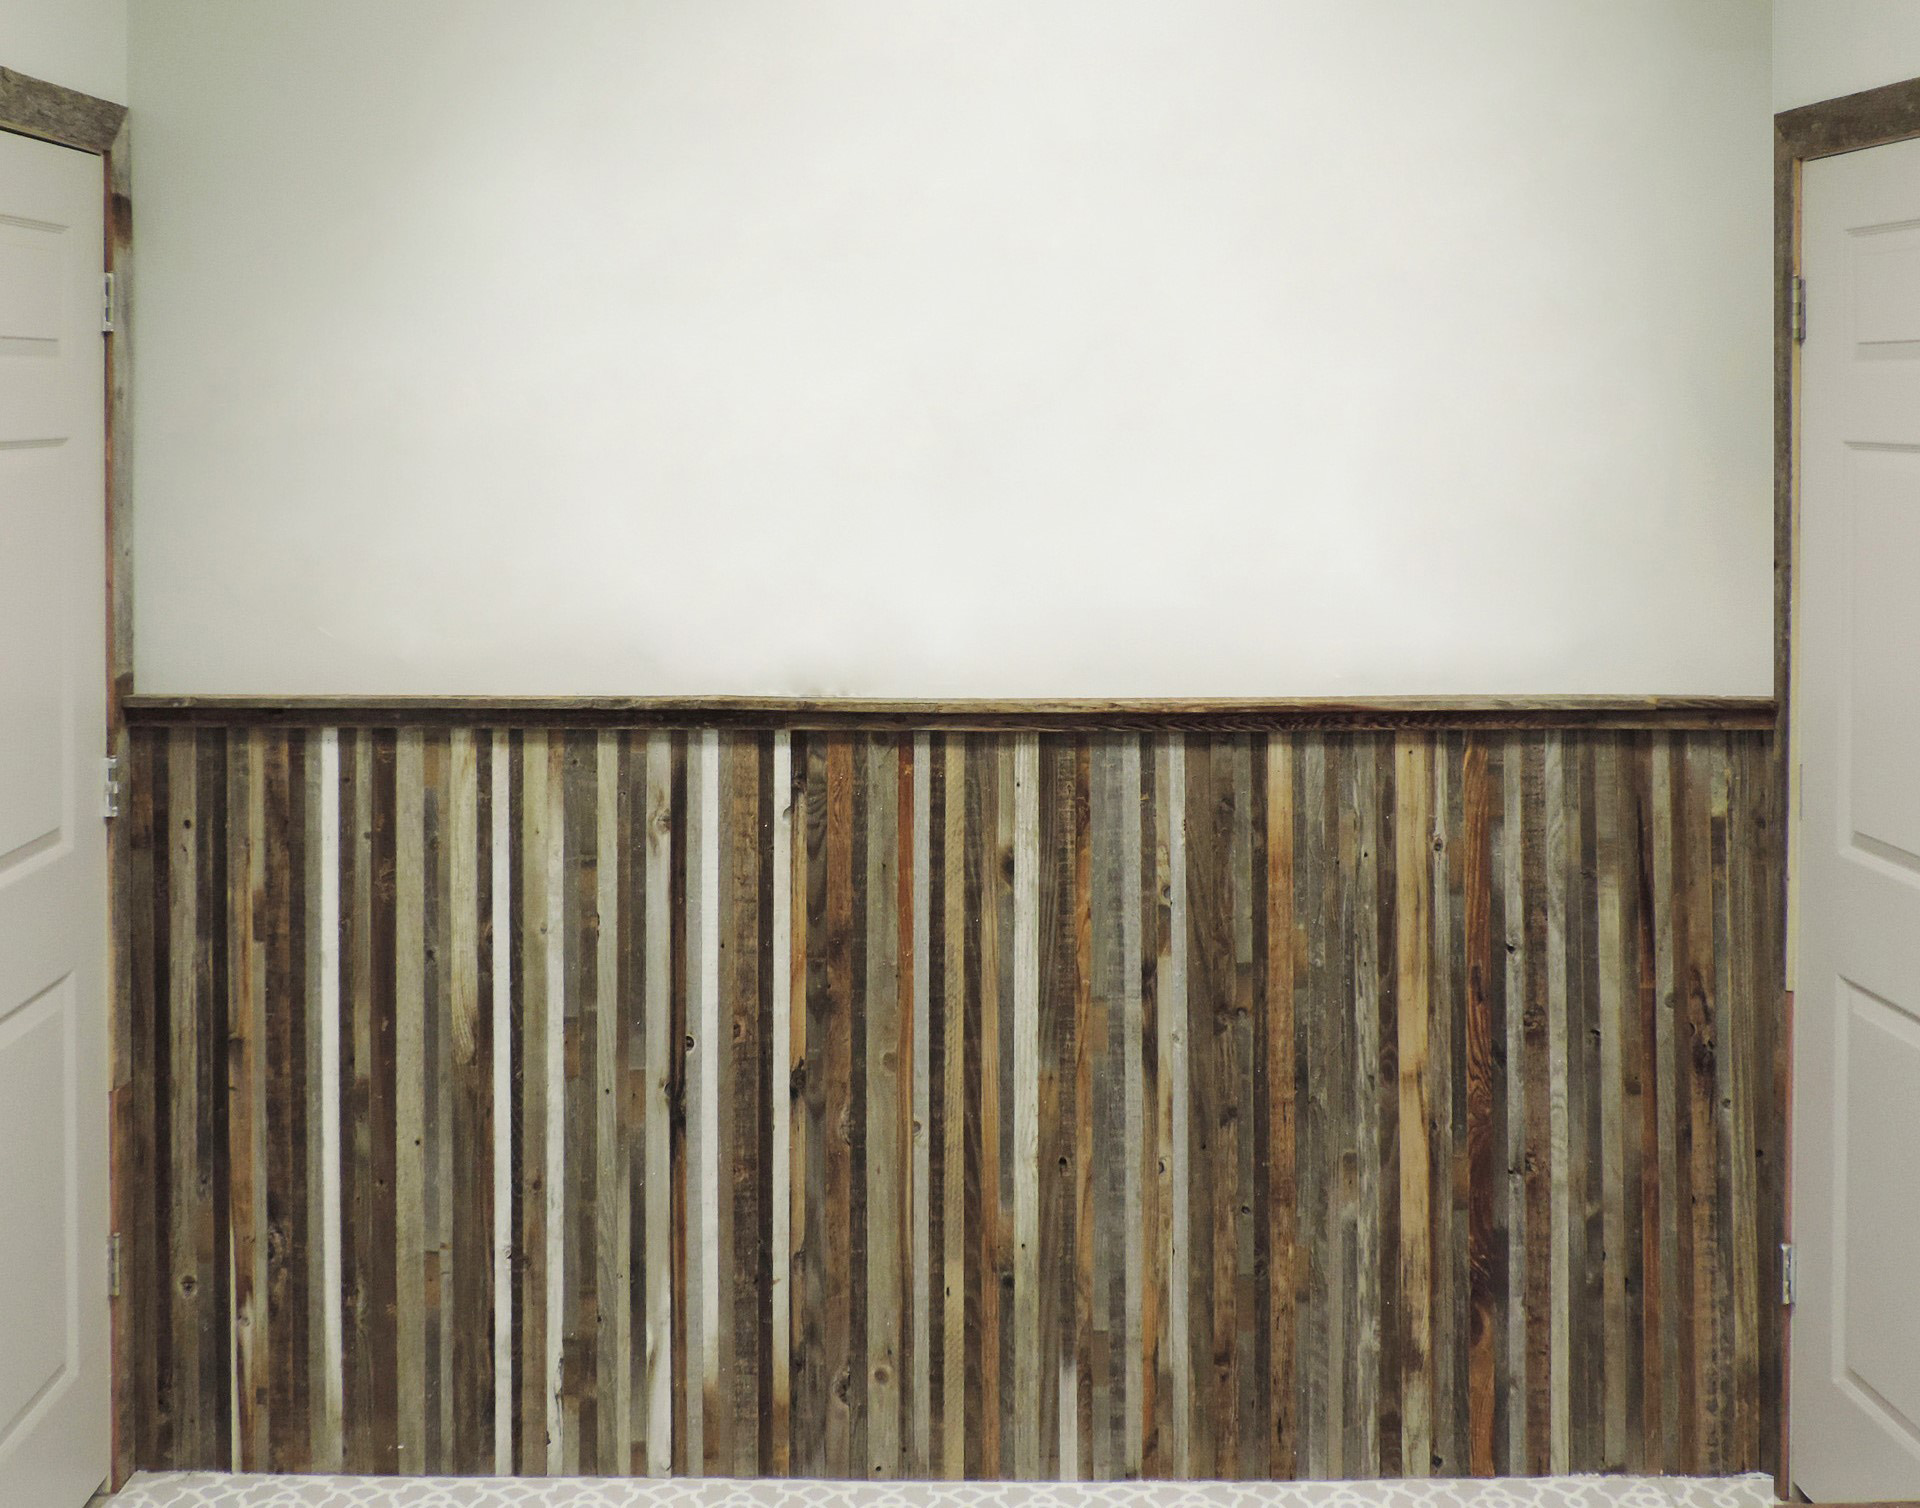 Barnwood Wainscoting Reclaimed Wood Wall ...